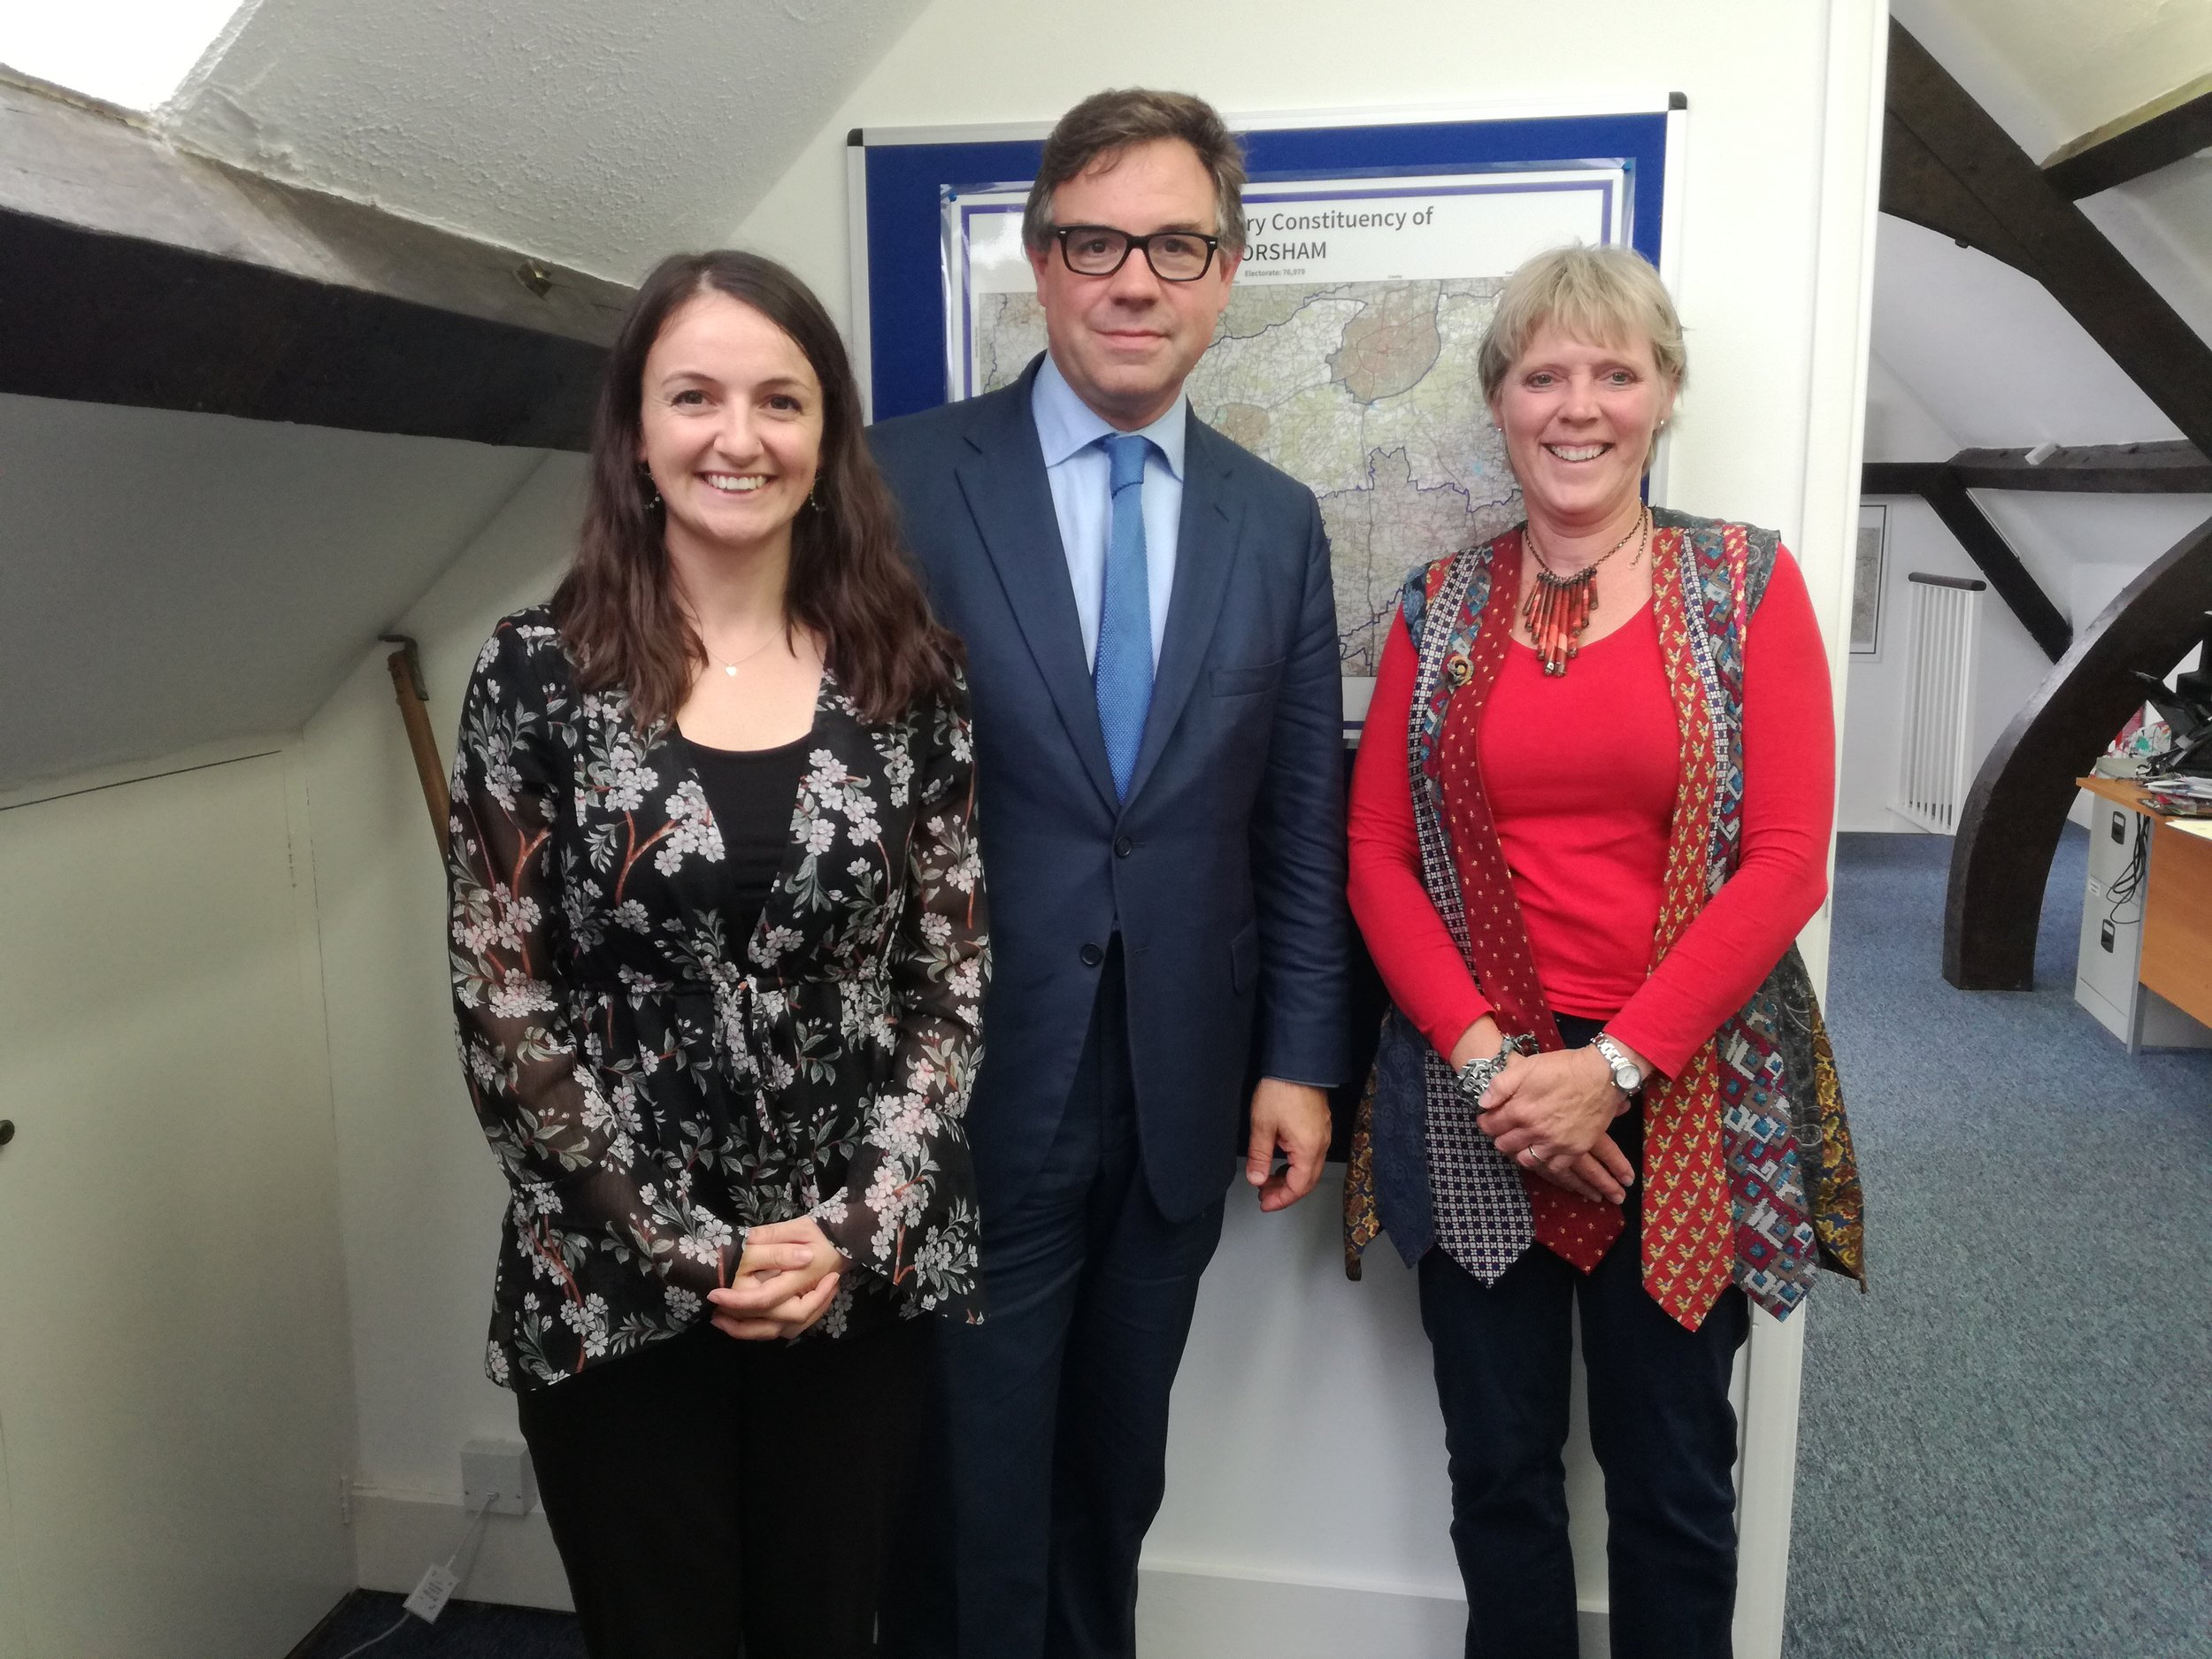 Sarah Robinson and Carrie Cort met with Jeremy Quin MP.